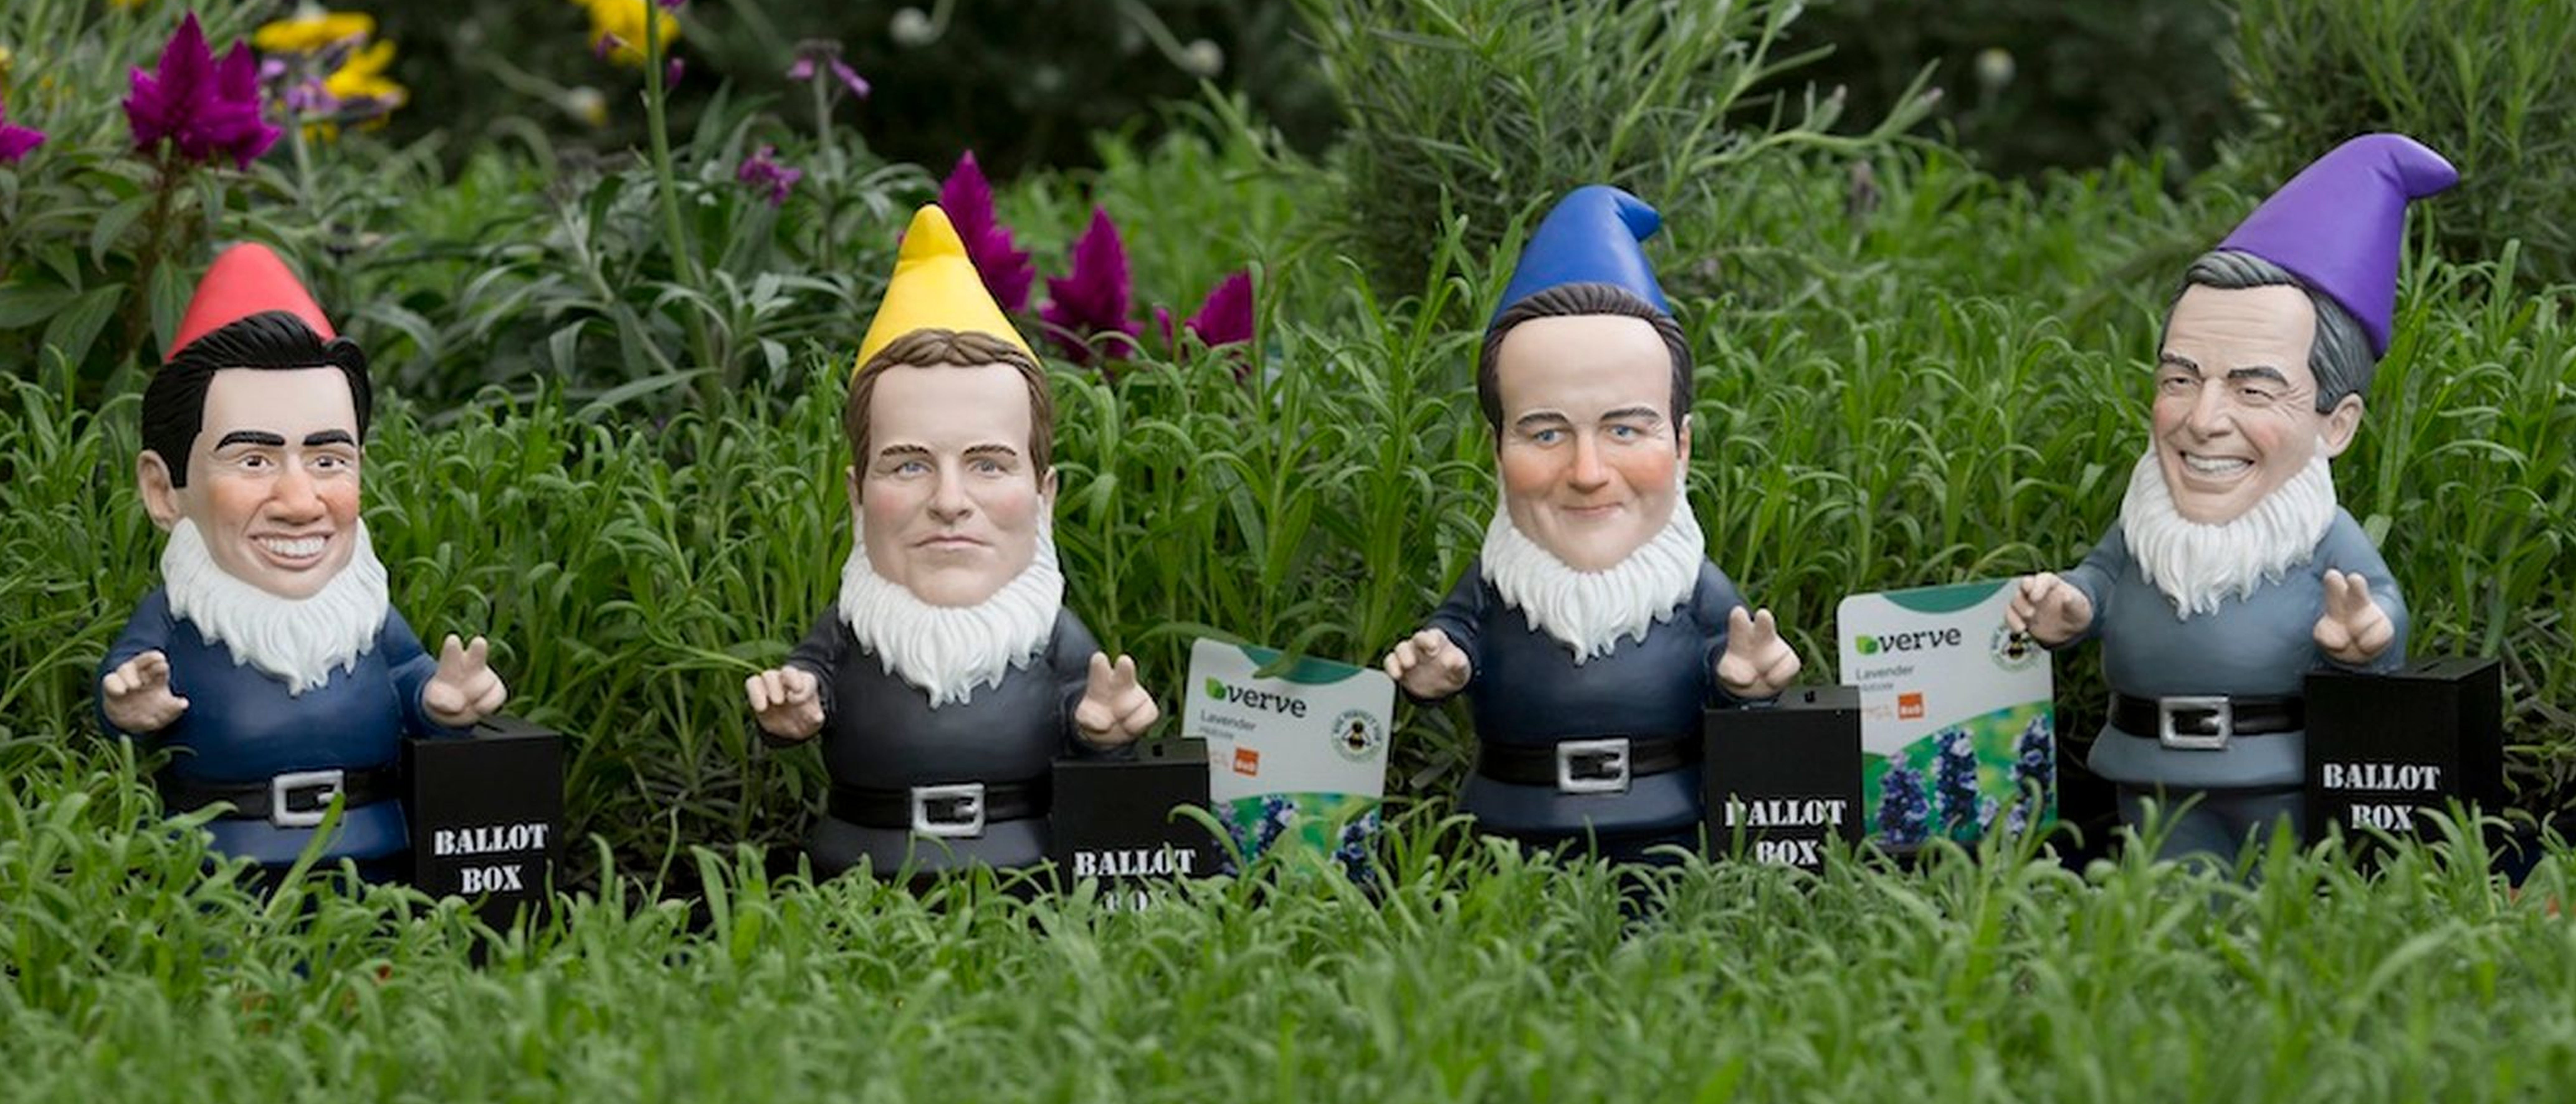 sculptworks general election 2015 gnomes 09